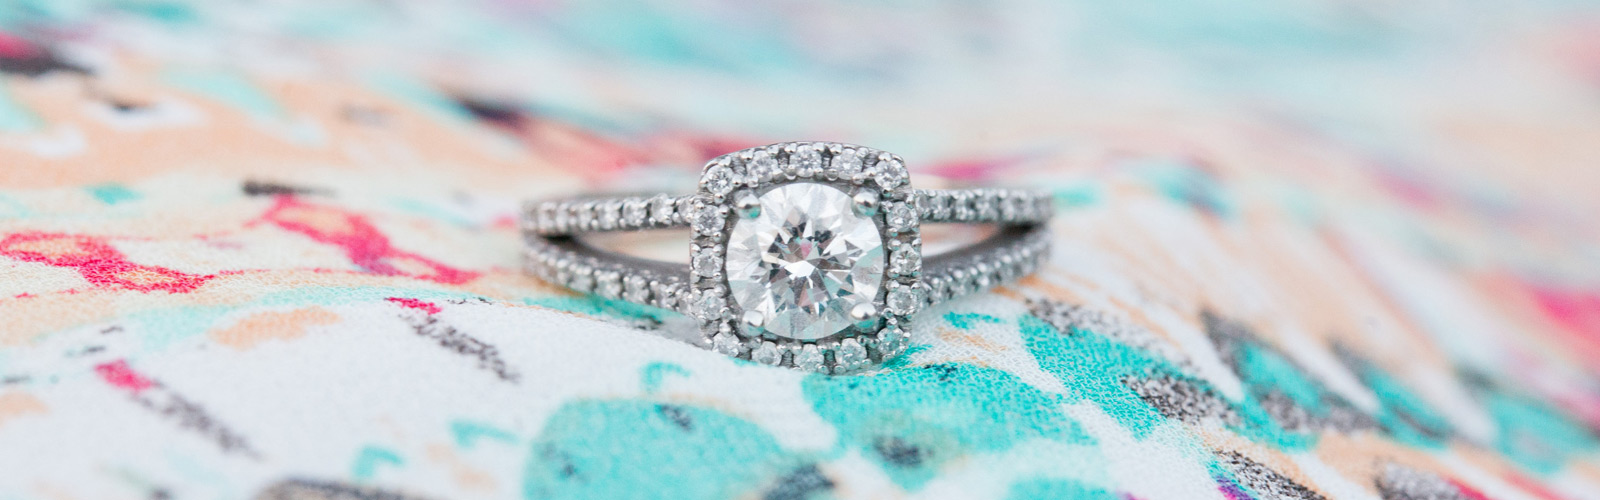 Engagement Rings, Diamonds, Fine Jewlery, Watches | Monmouth County NJ